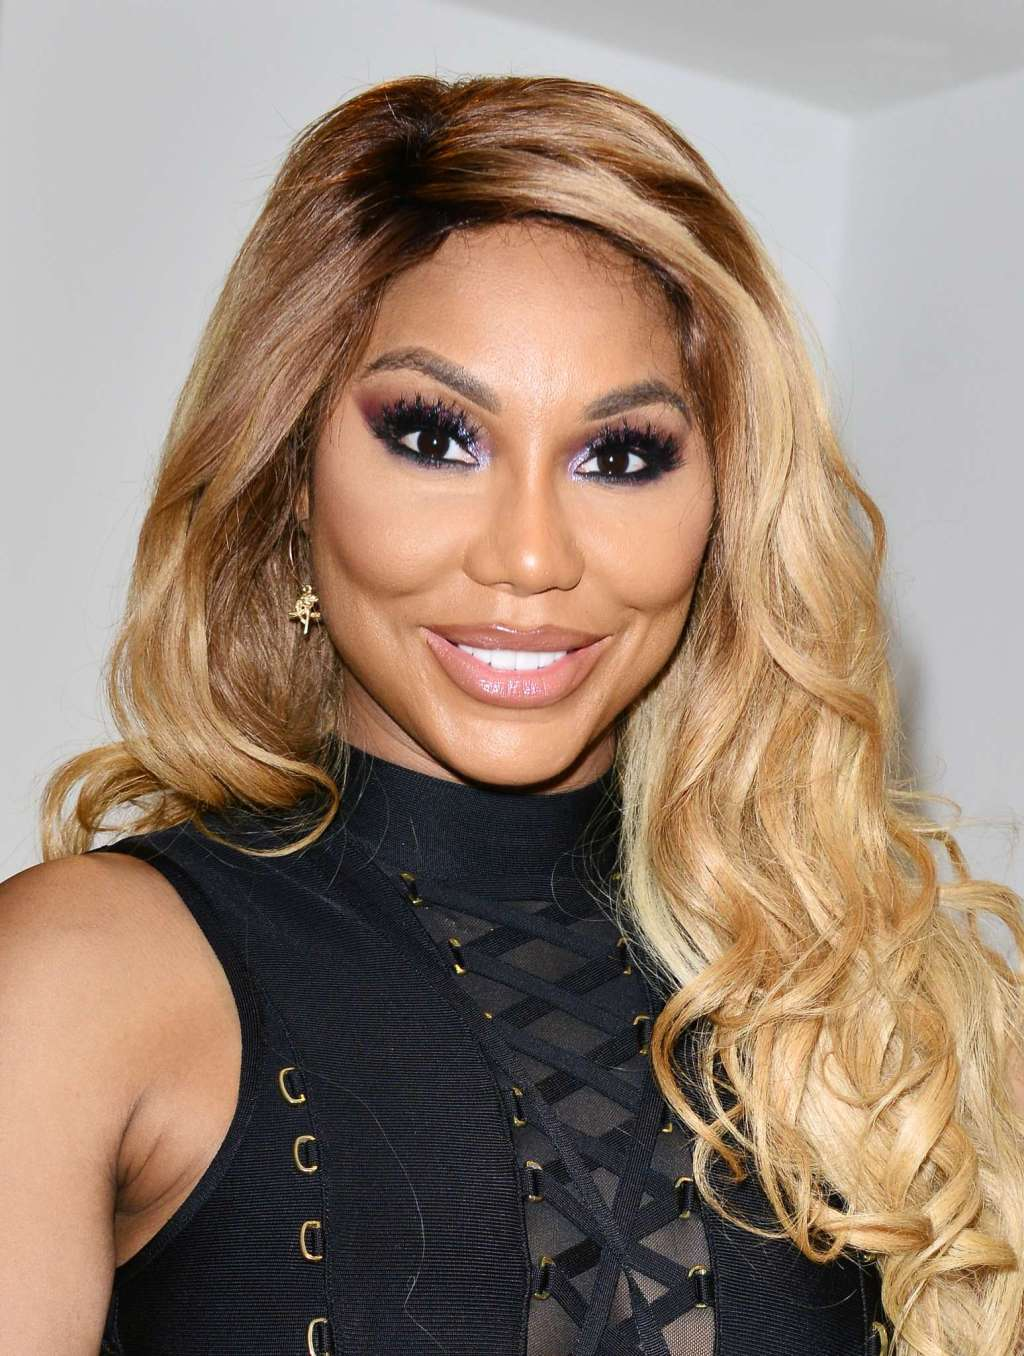 Tamar Braxton Has Fans Saying They Are Proud Of Her - Check Out Her Post Here